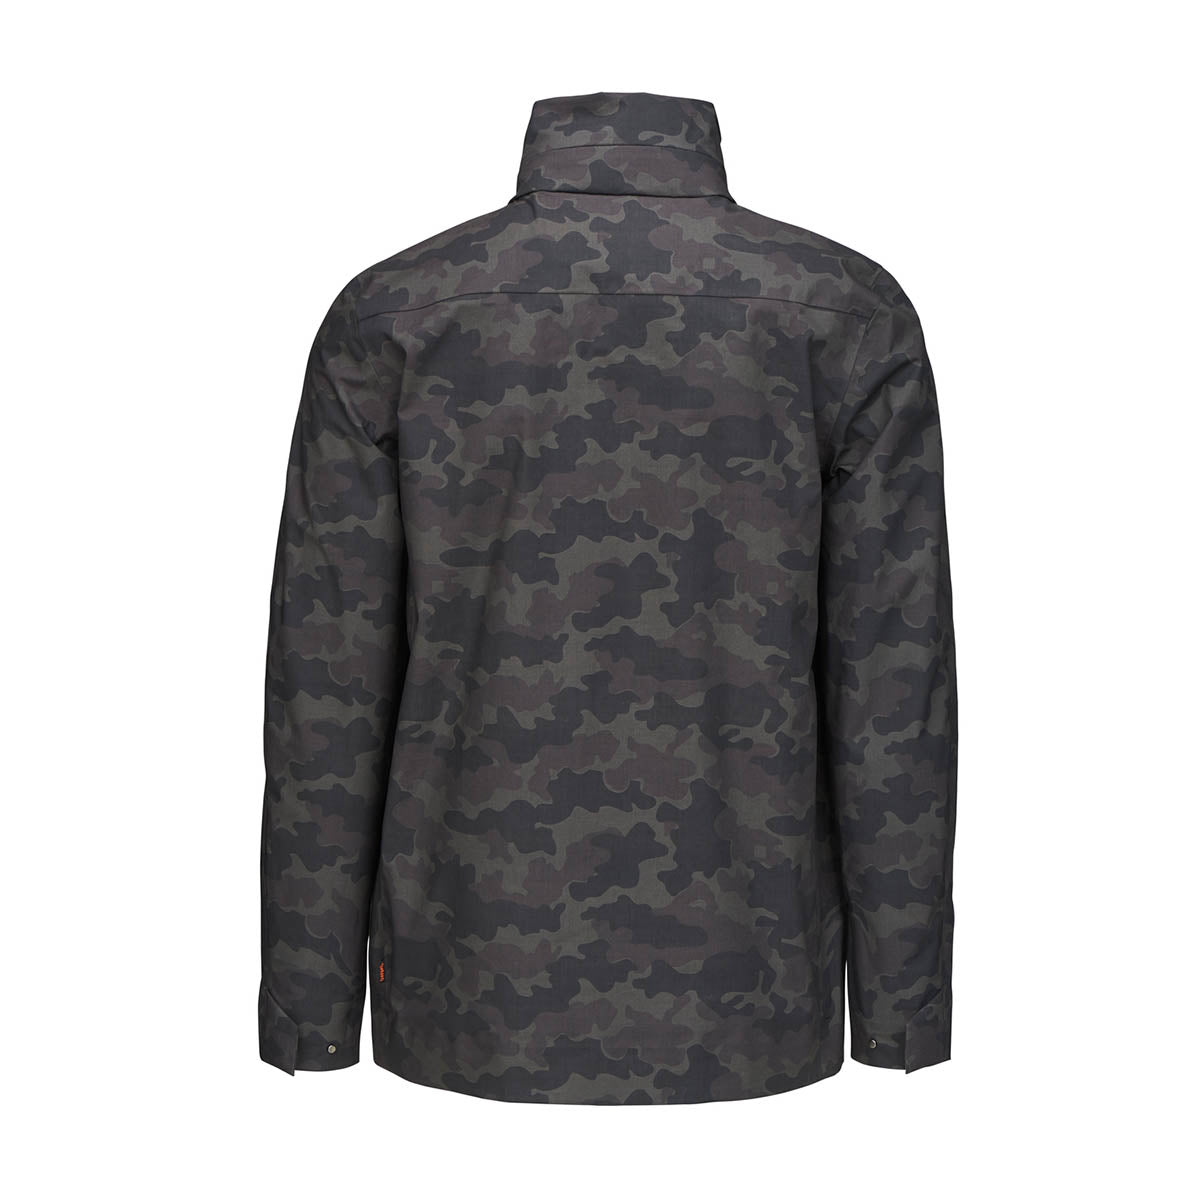 Motion Field Jacket - background::white,variant::Night Camo